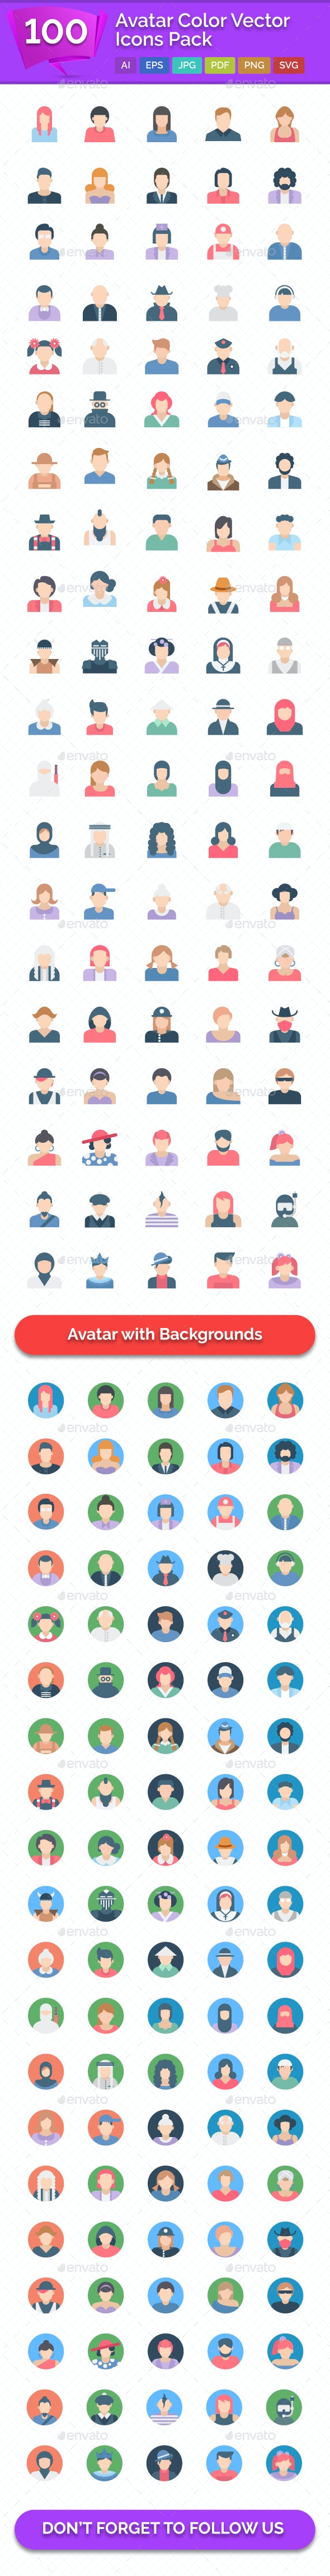 100 Avatar Color Vector Icons Pack - Icons